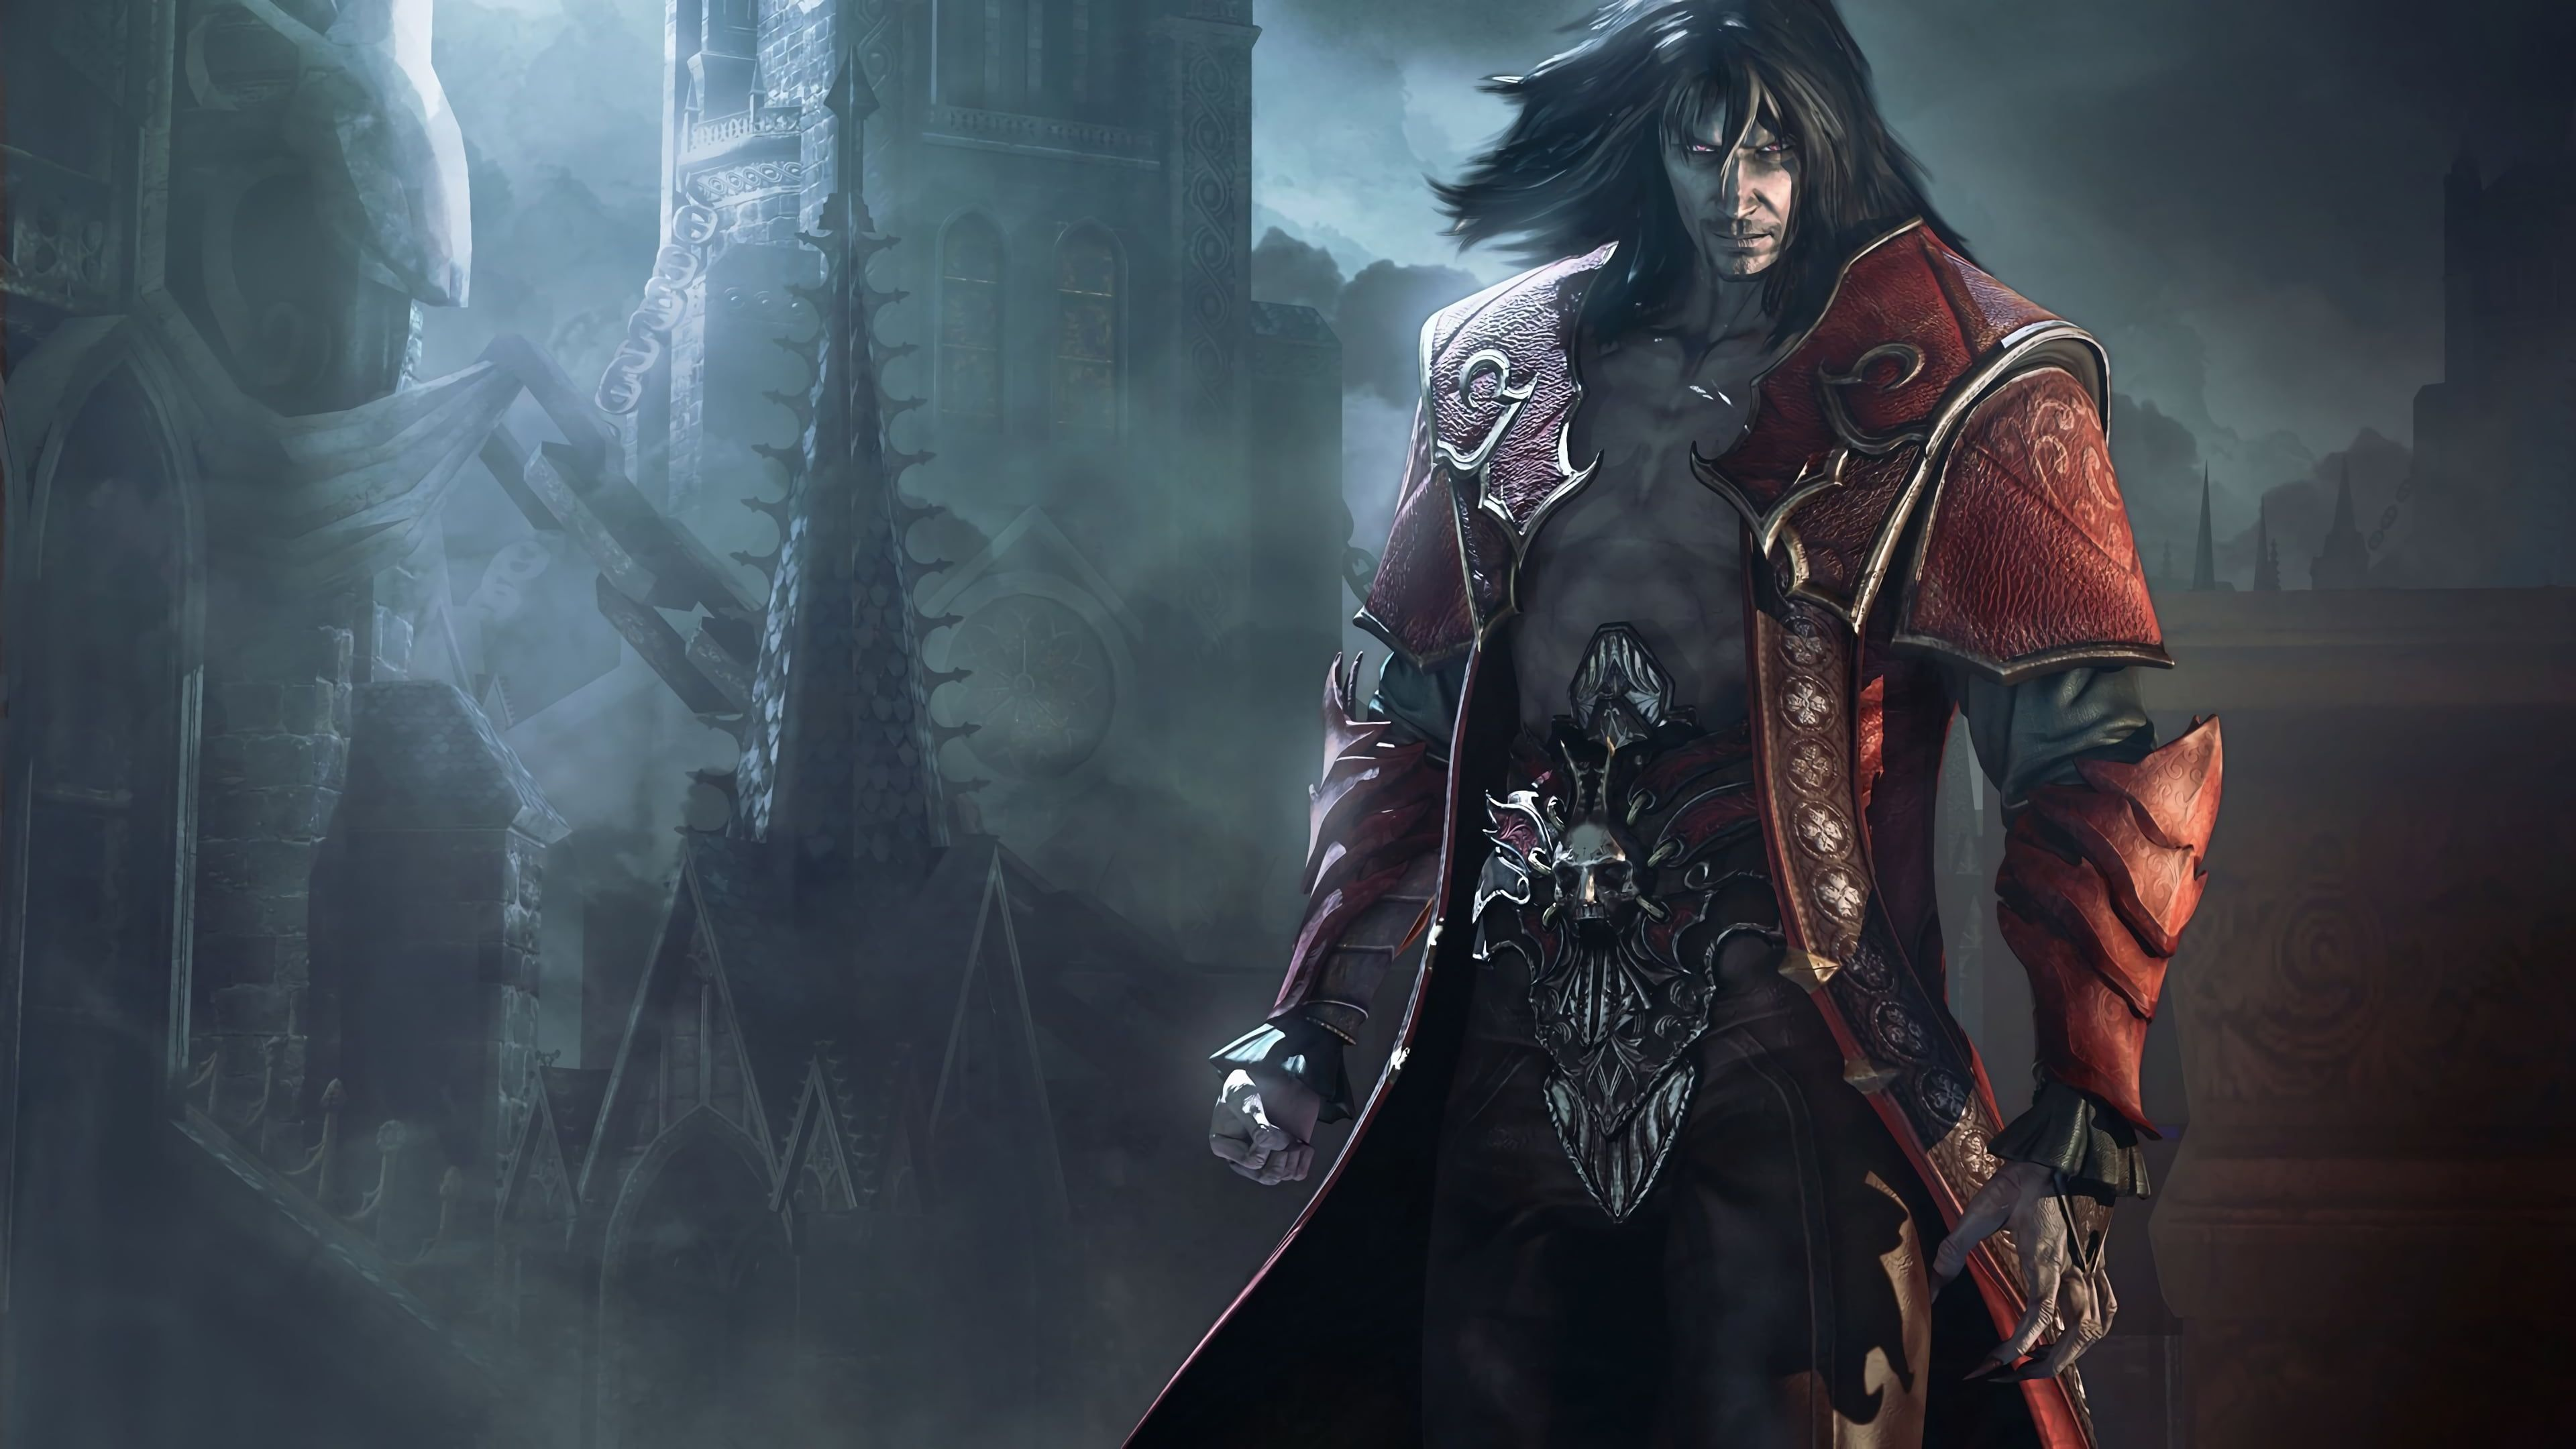 Castlevania Wallpapers Top Free Castlevania Backgrounds